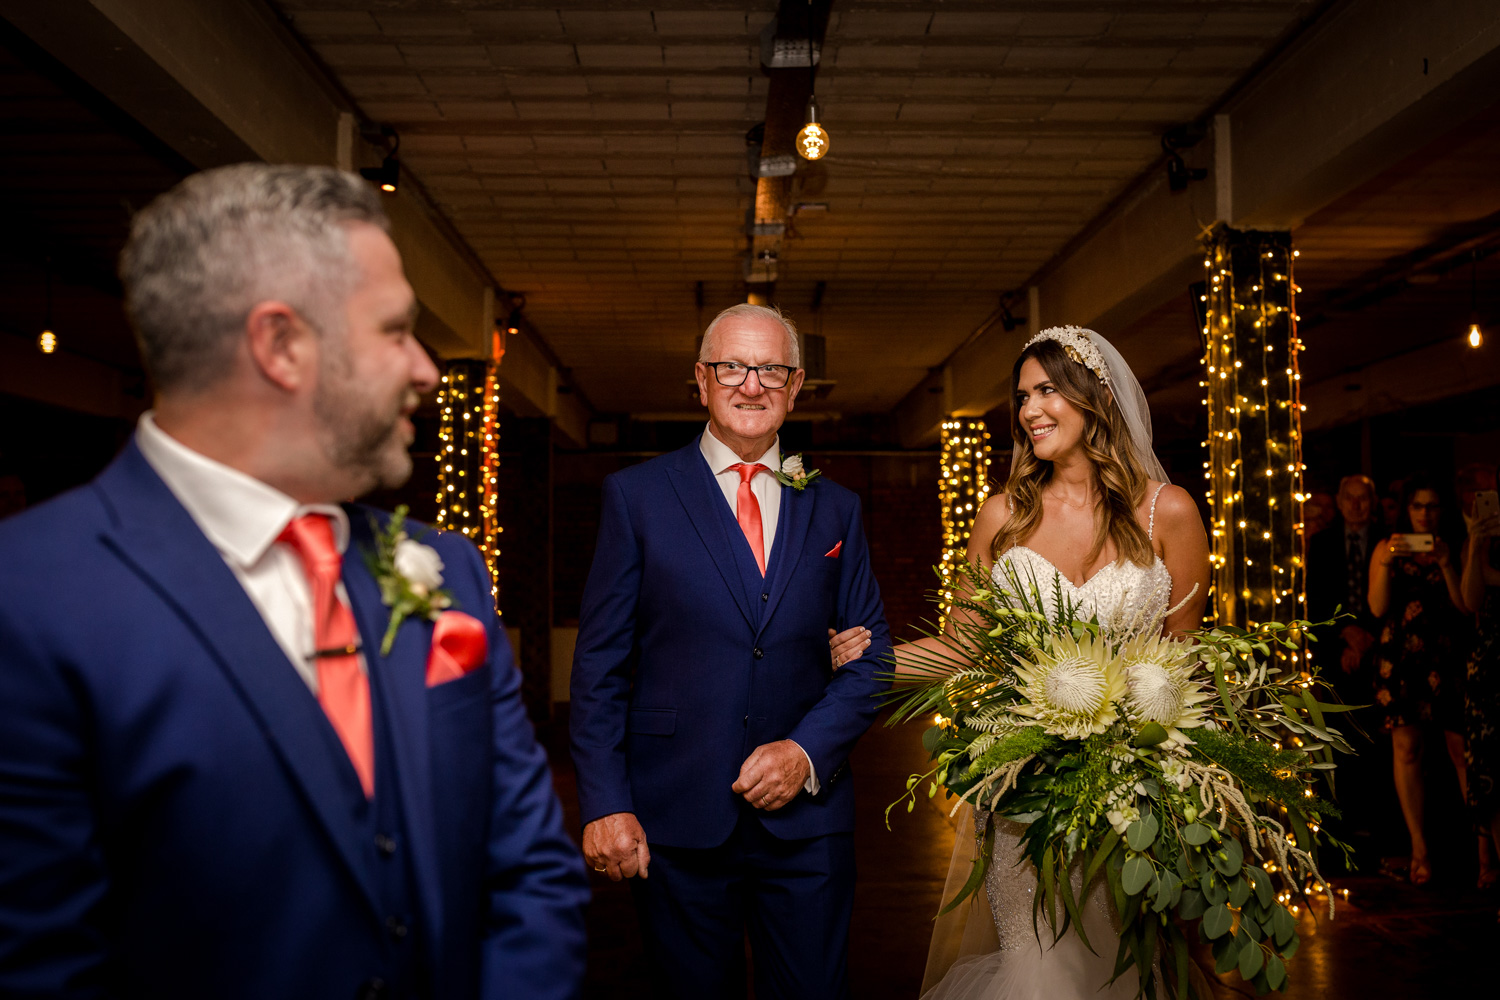 The bride arrives with her dad at Victoria Warehouse in Manchester